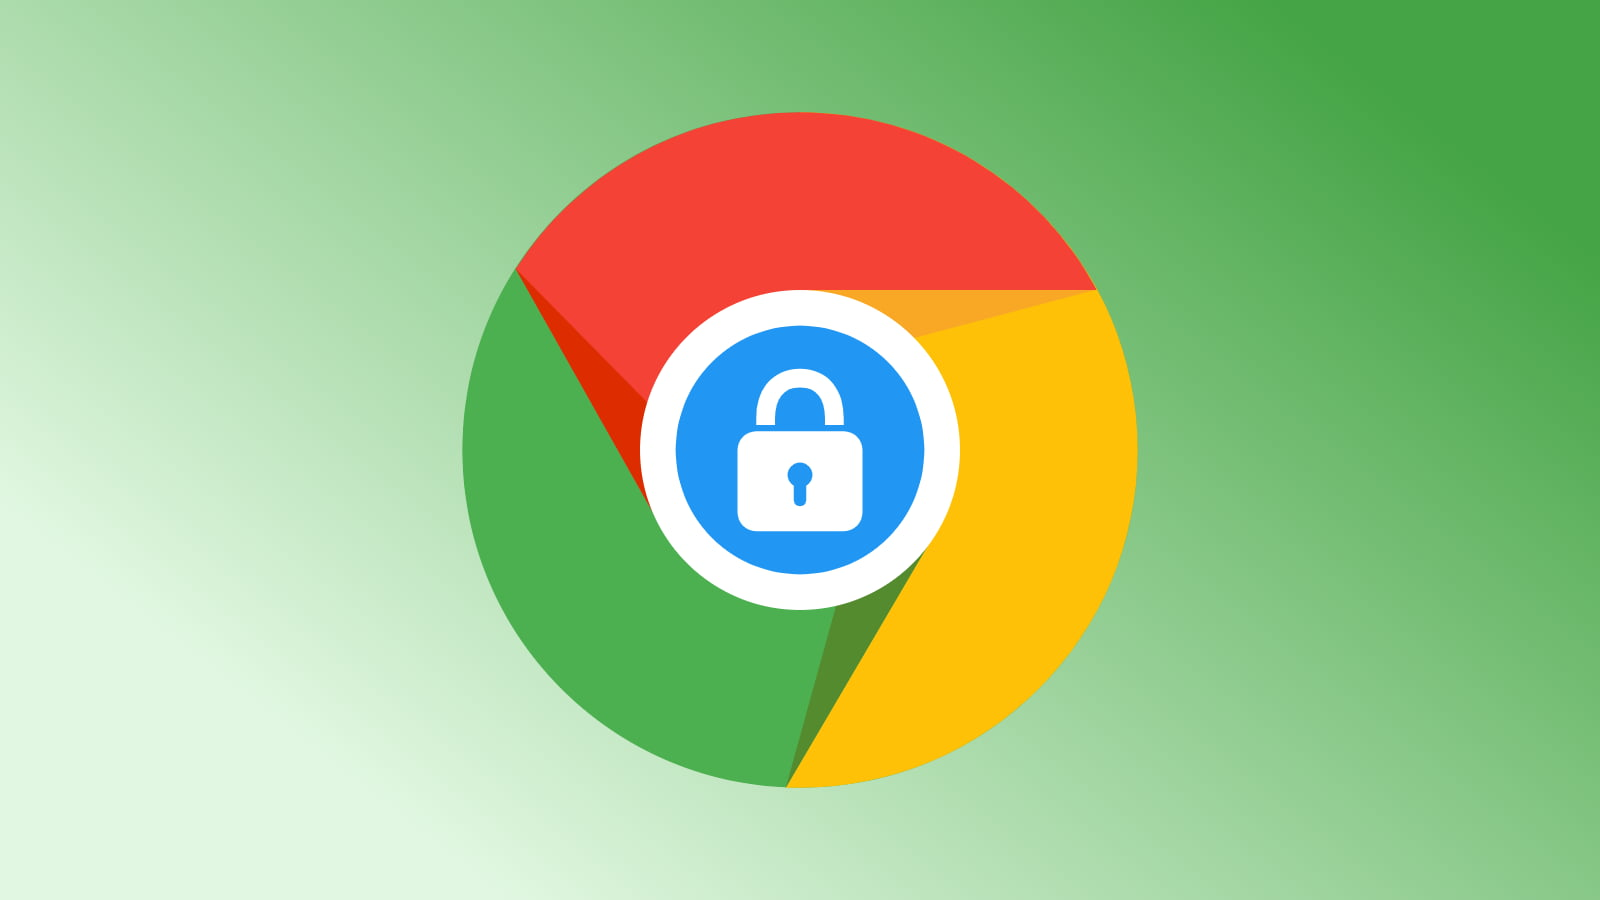 Google sets a roadmap for blocking insecure downloads in Chrome